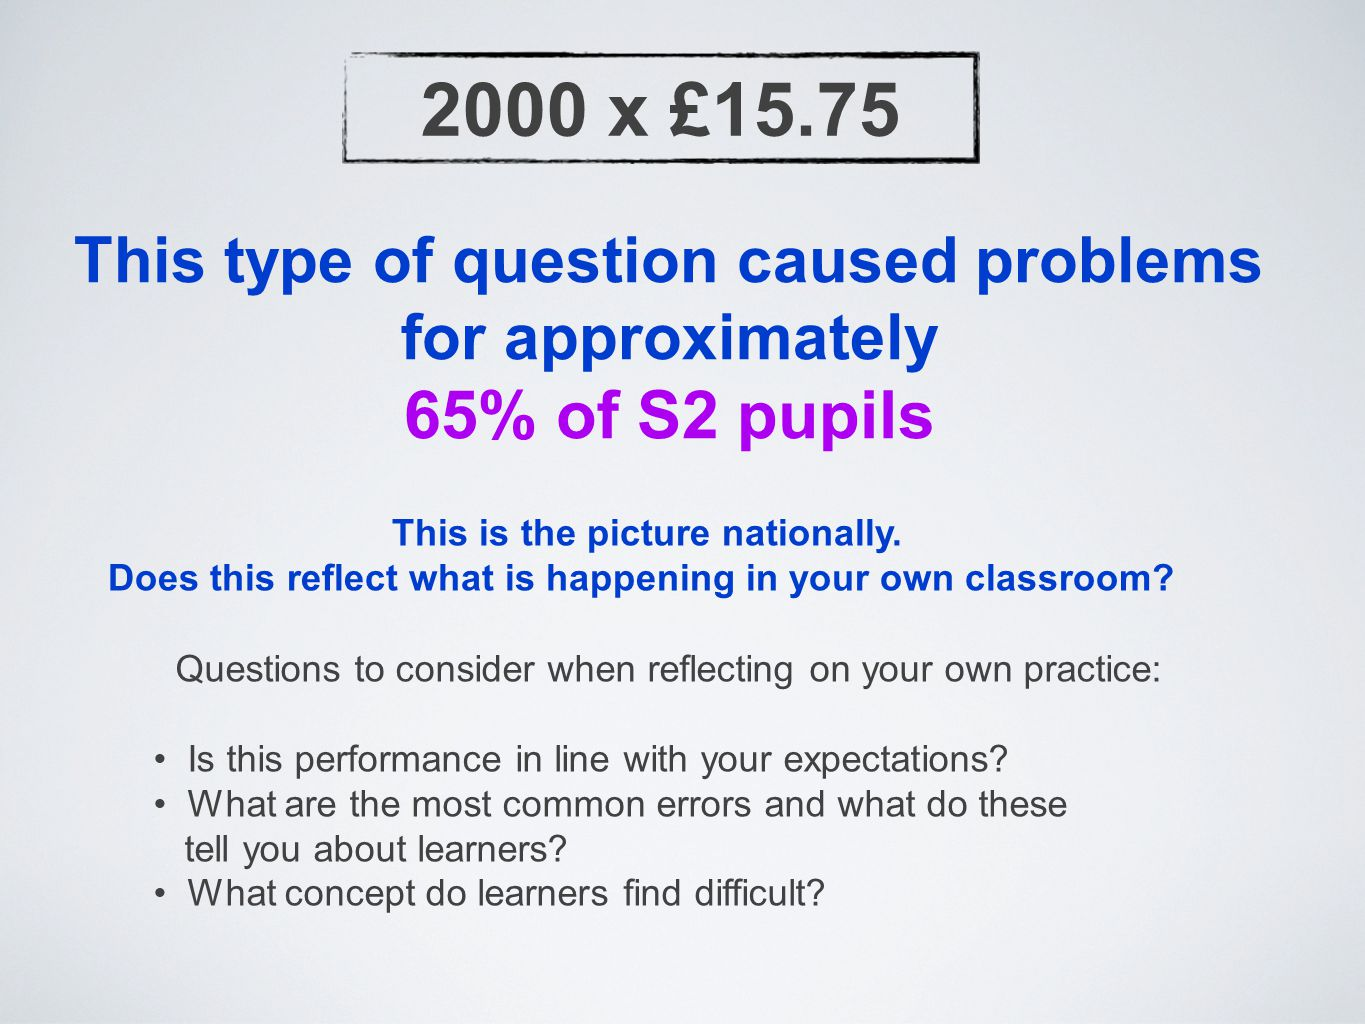 2000 x £15.75 This type of question caused problems for approximately 65% of S2 pupils This is the picture nationally.